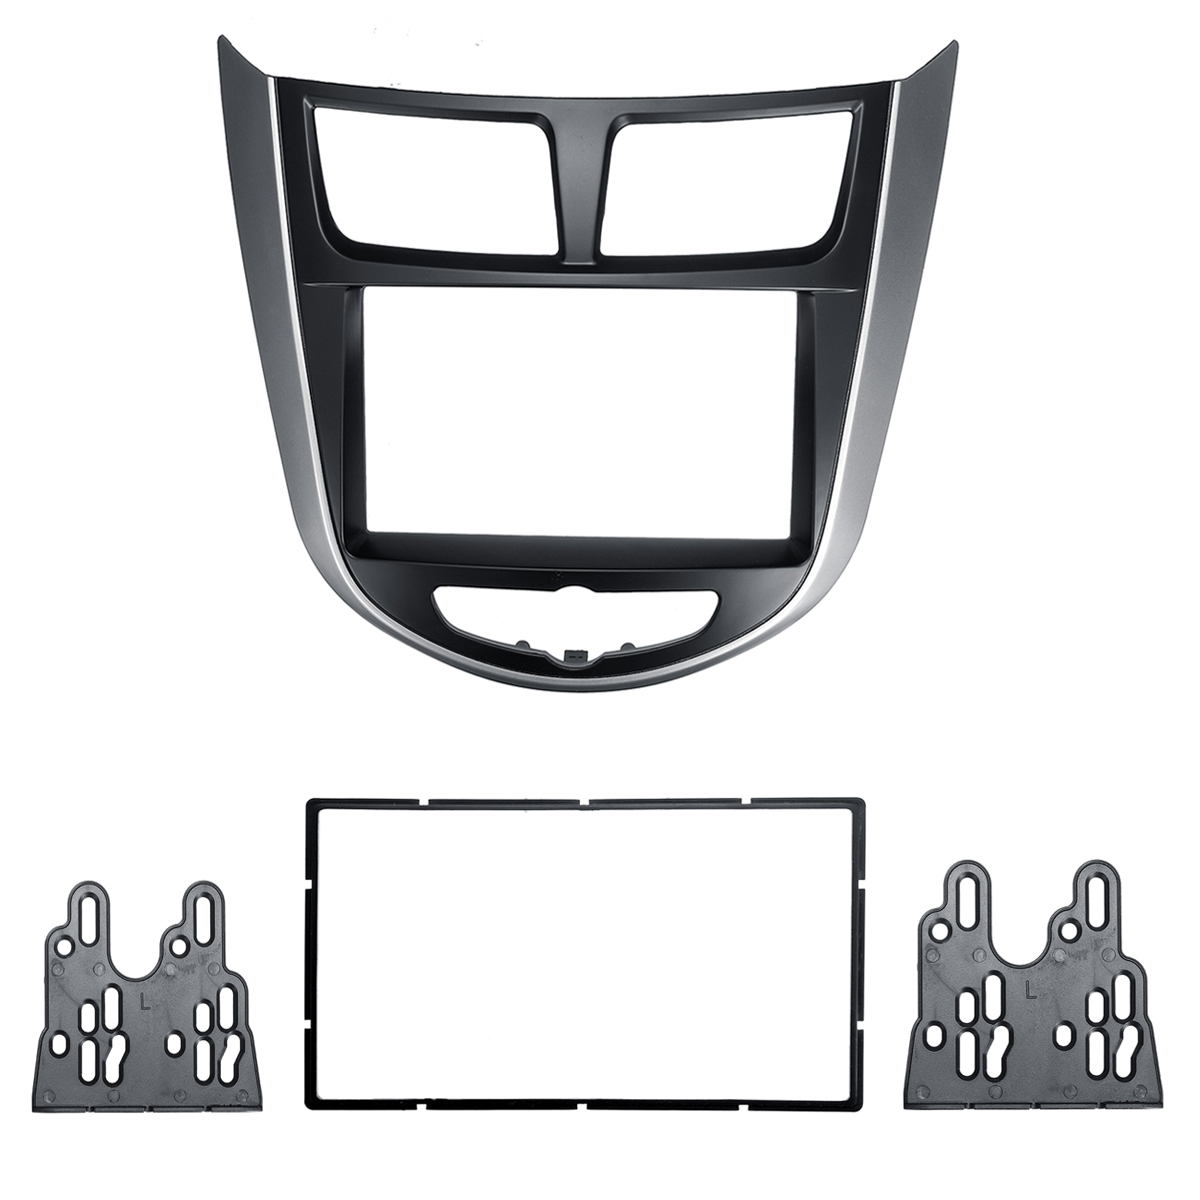 2 Dins Car Center Stereo Audio Radio DVD GPS Plate Panel Frame Fascias Replacement For Hyundai i-25 For Accent Solaris Verna image